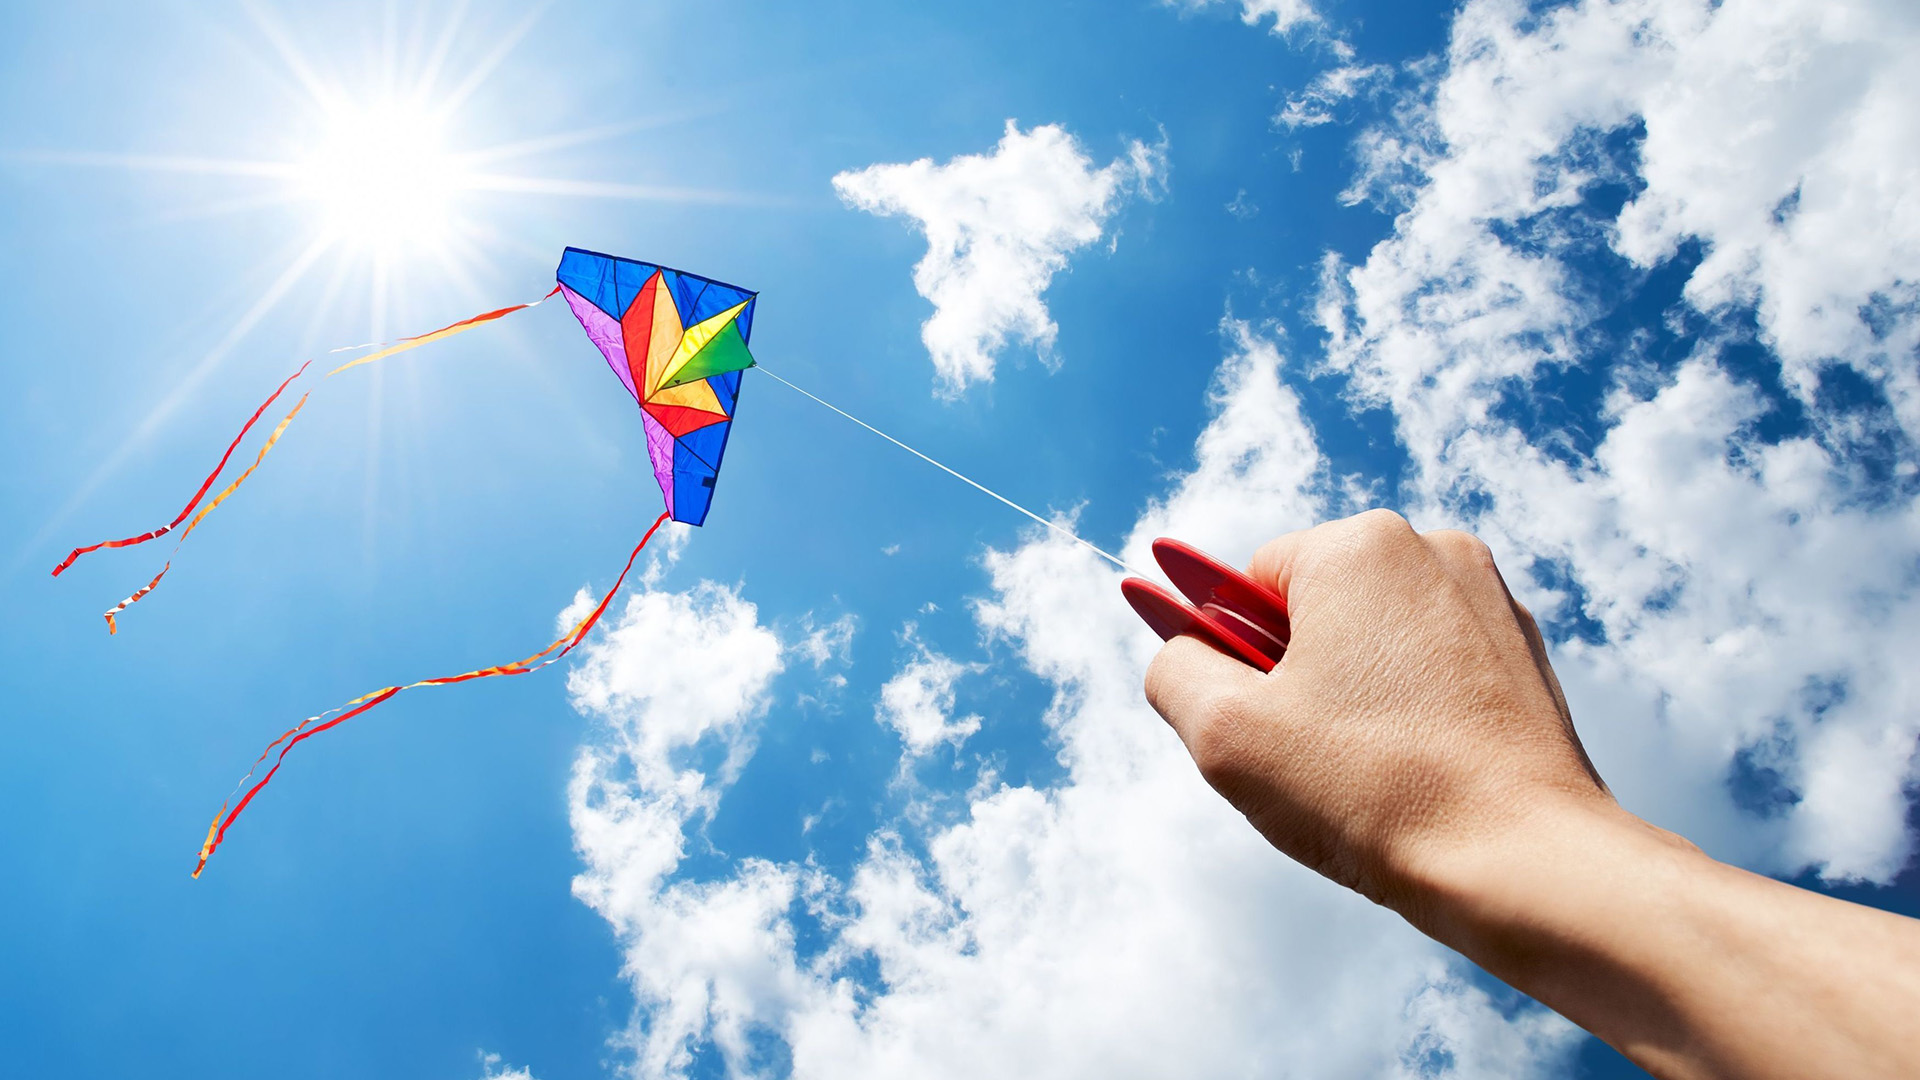 April 21 Go fly A kite Day Digital Signage Graphic